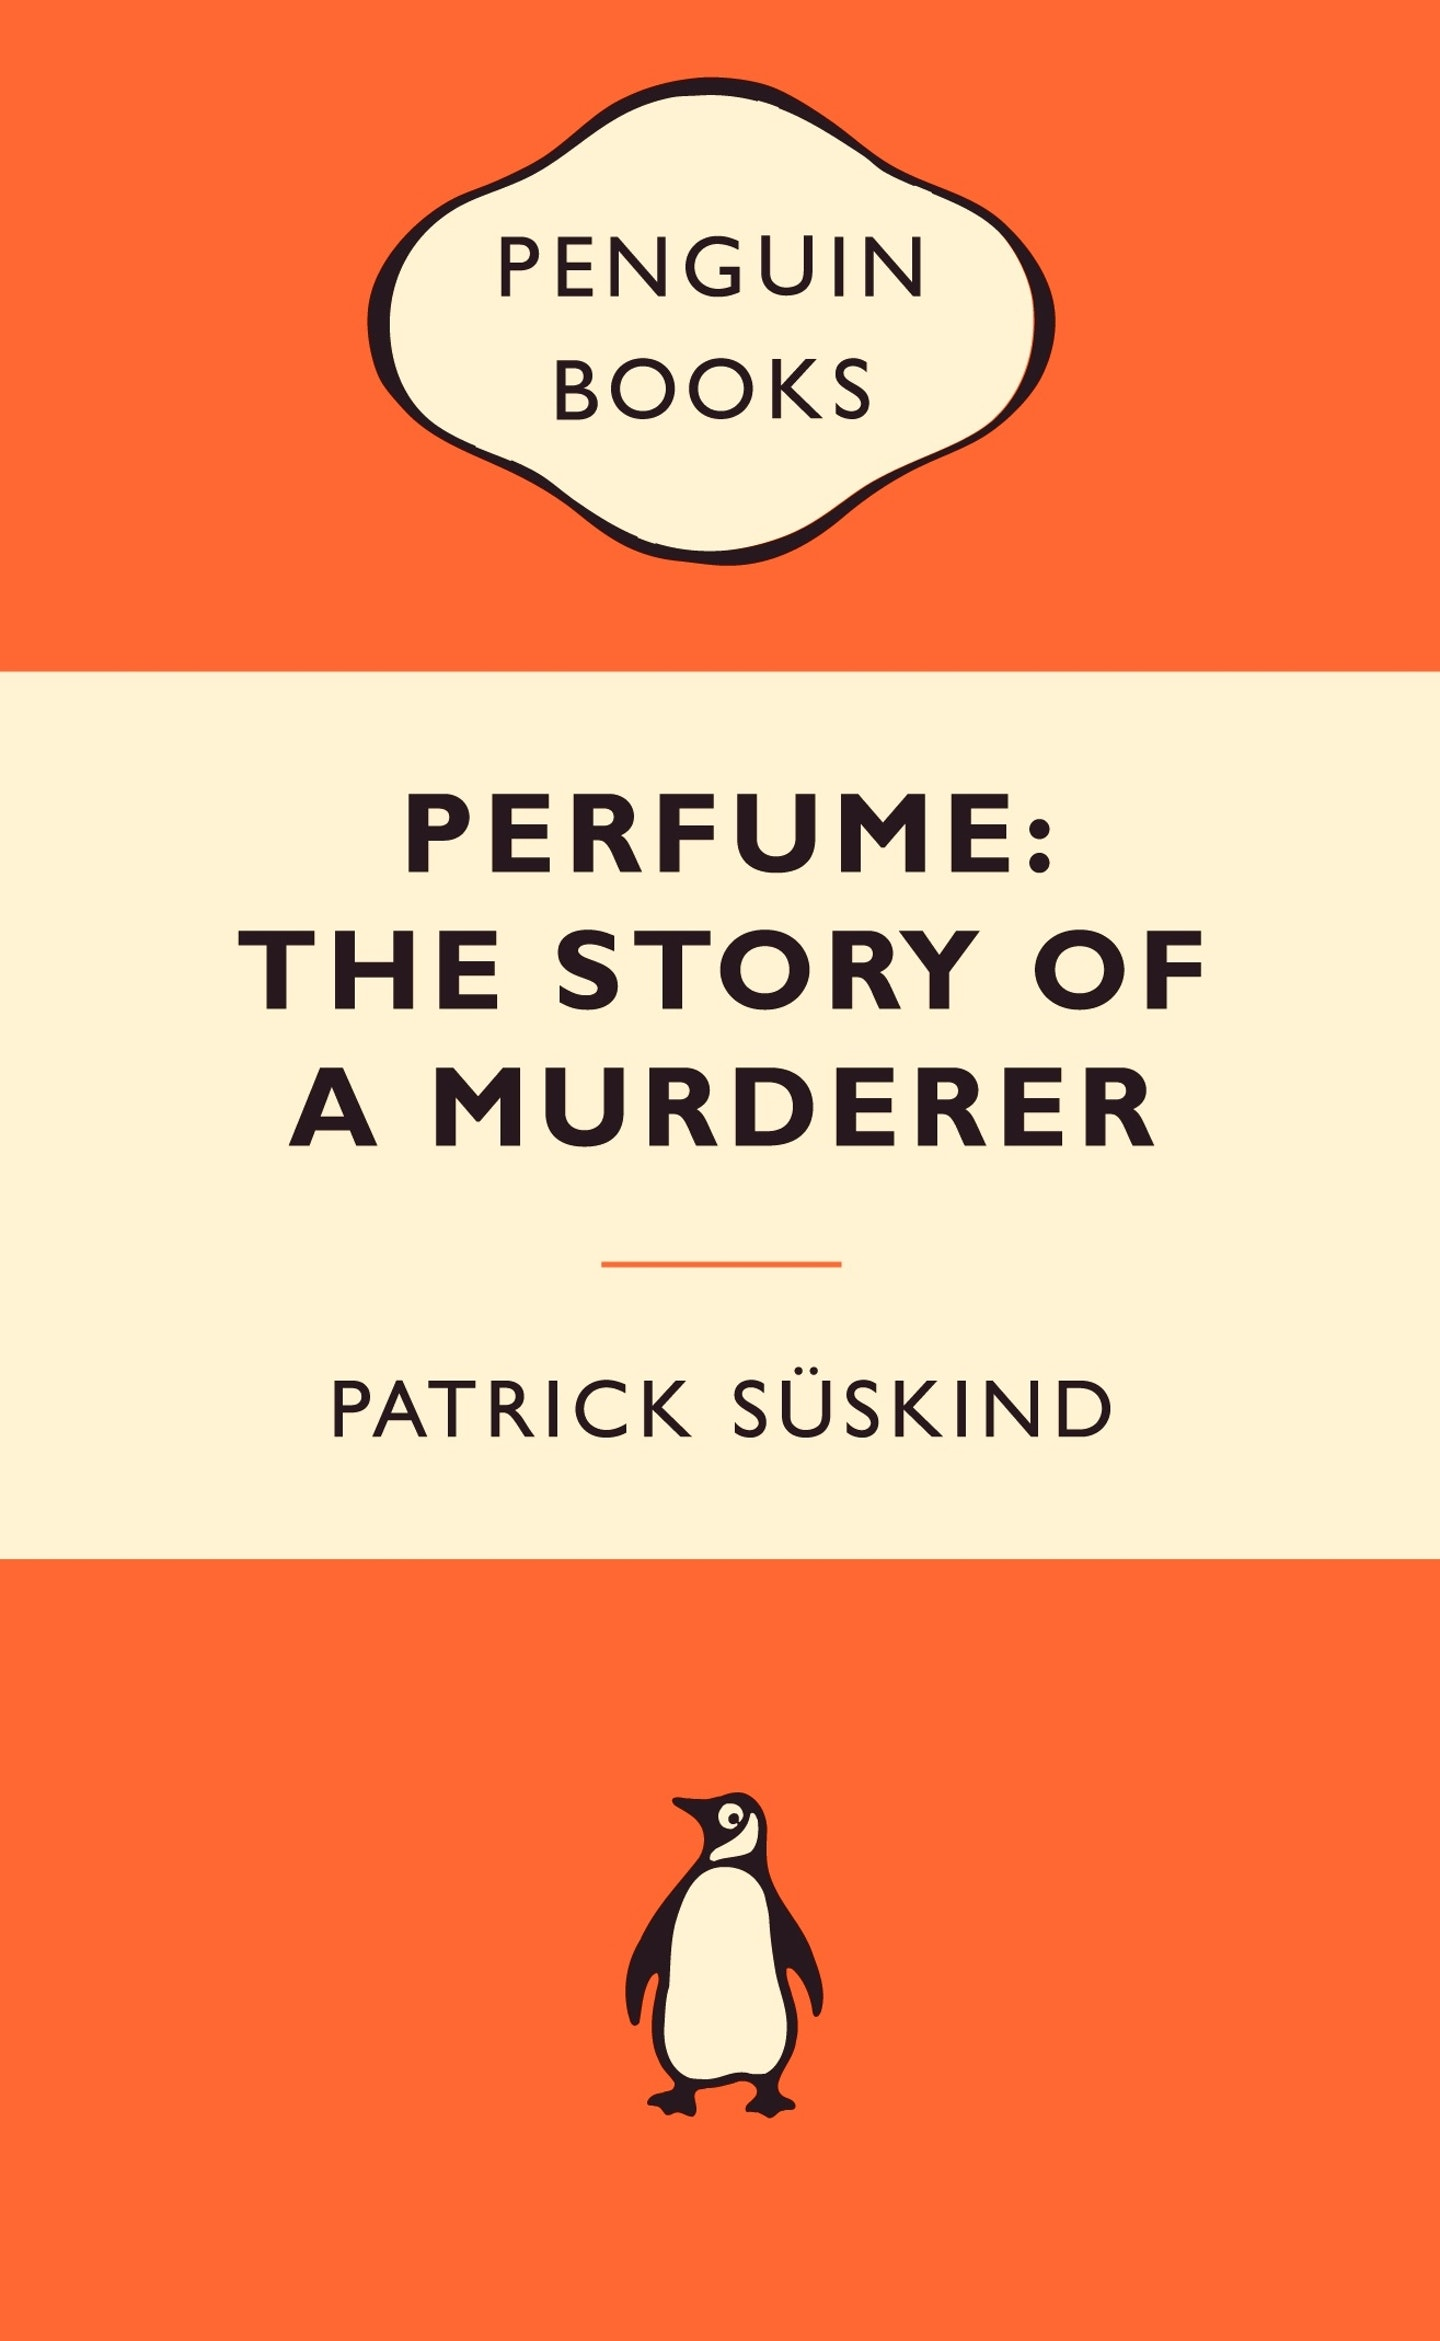 Penguin Book Cover Gifts : Perfume the story of a murderer popular penguins